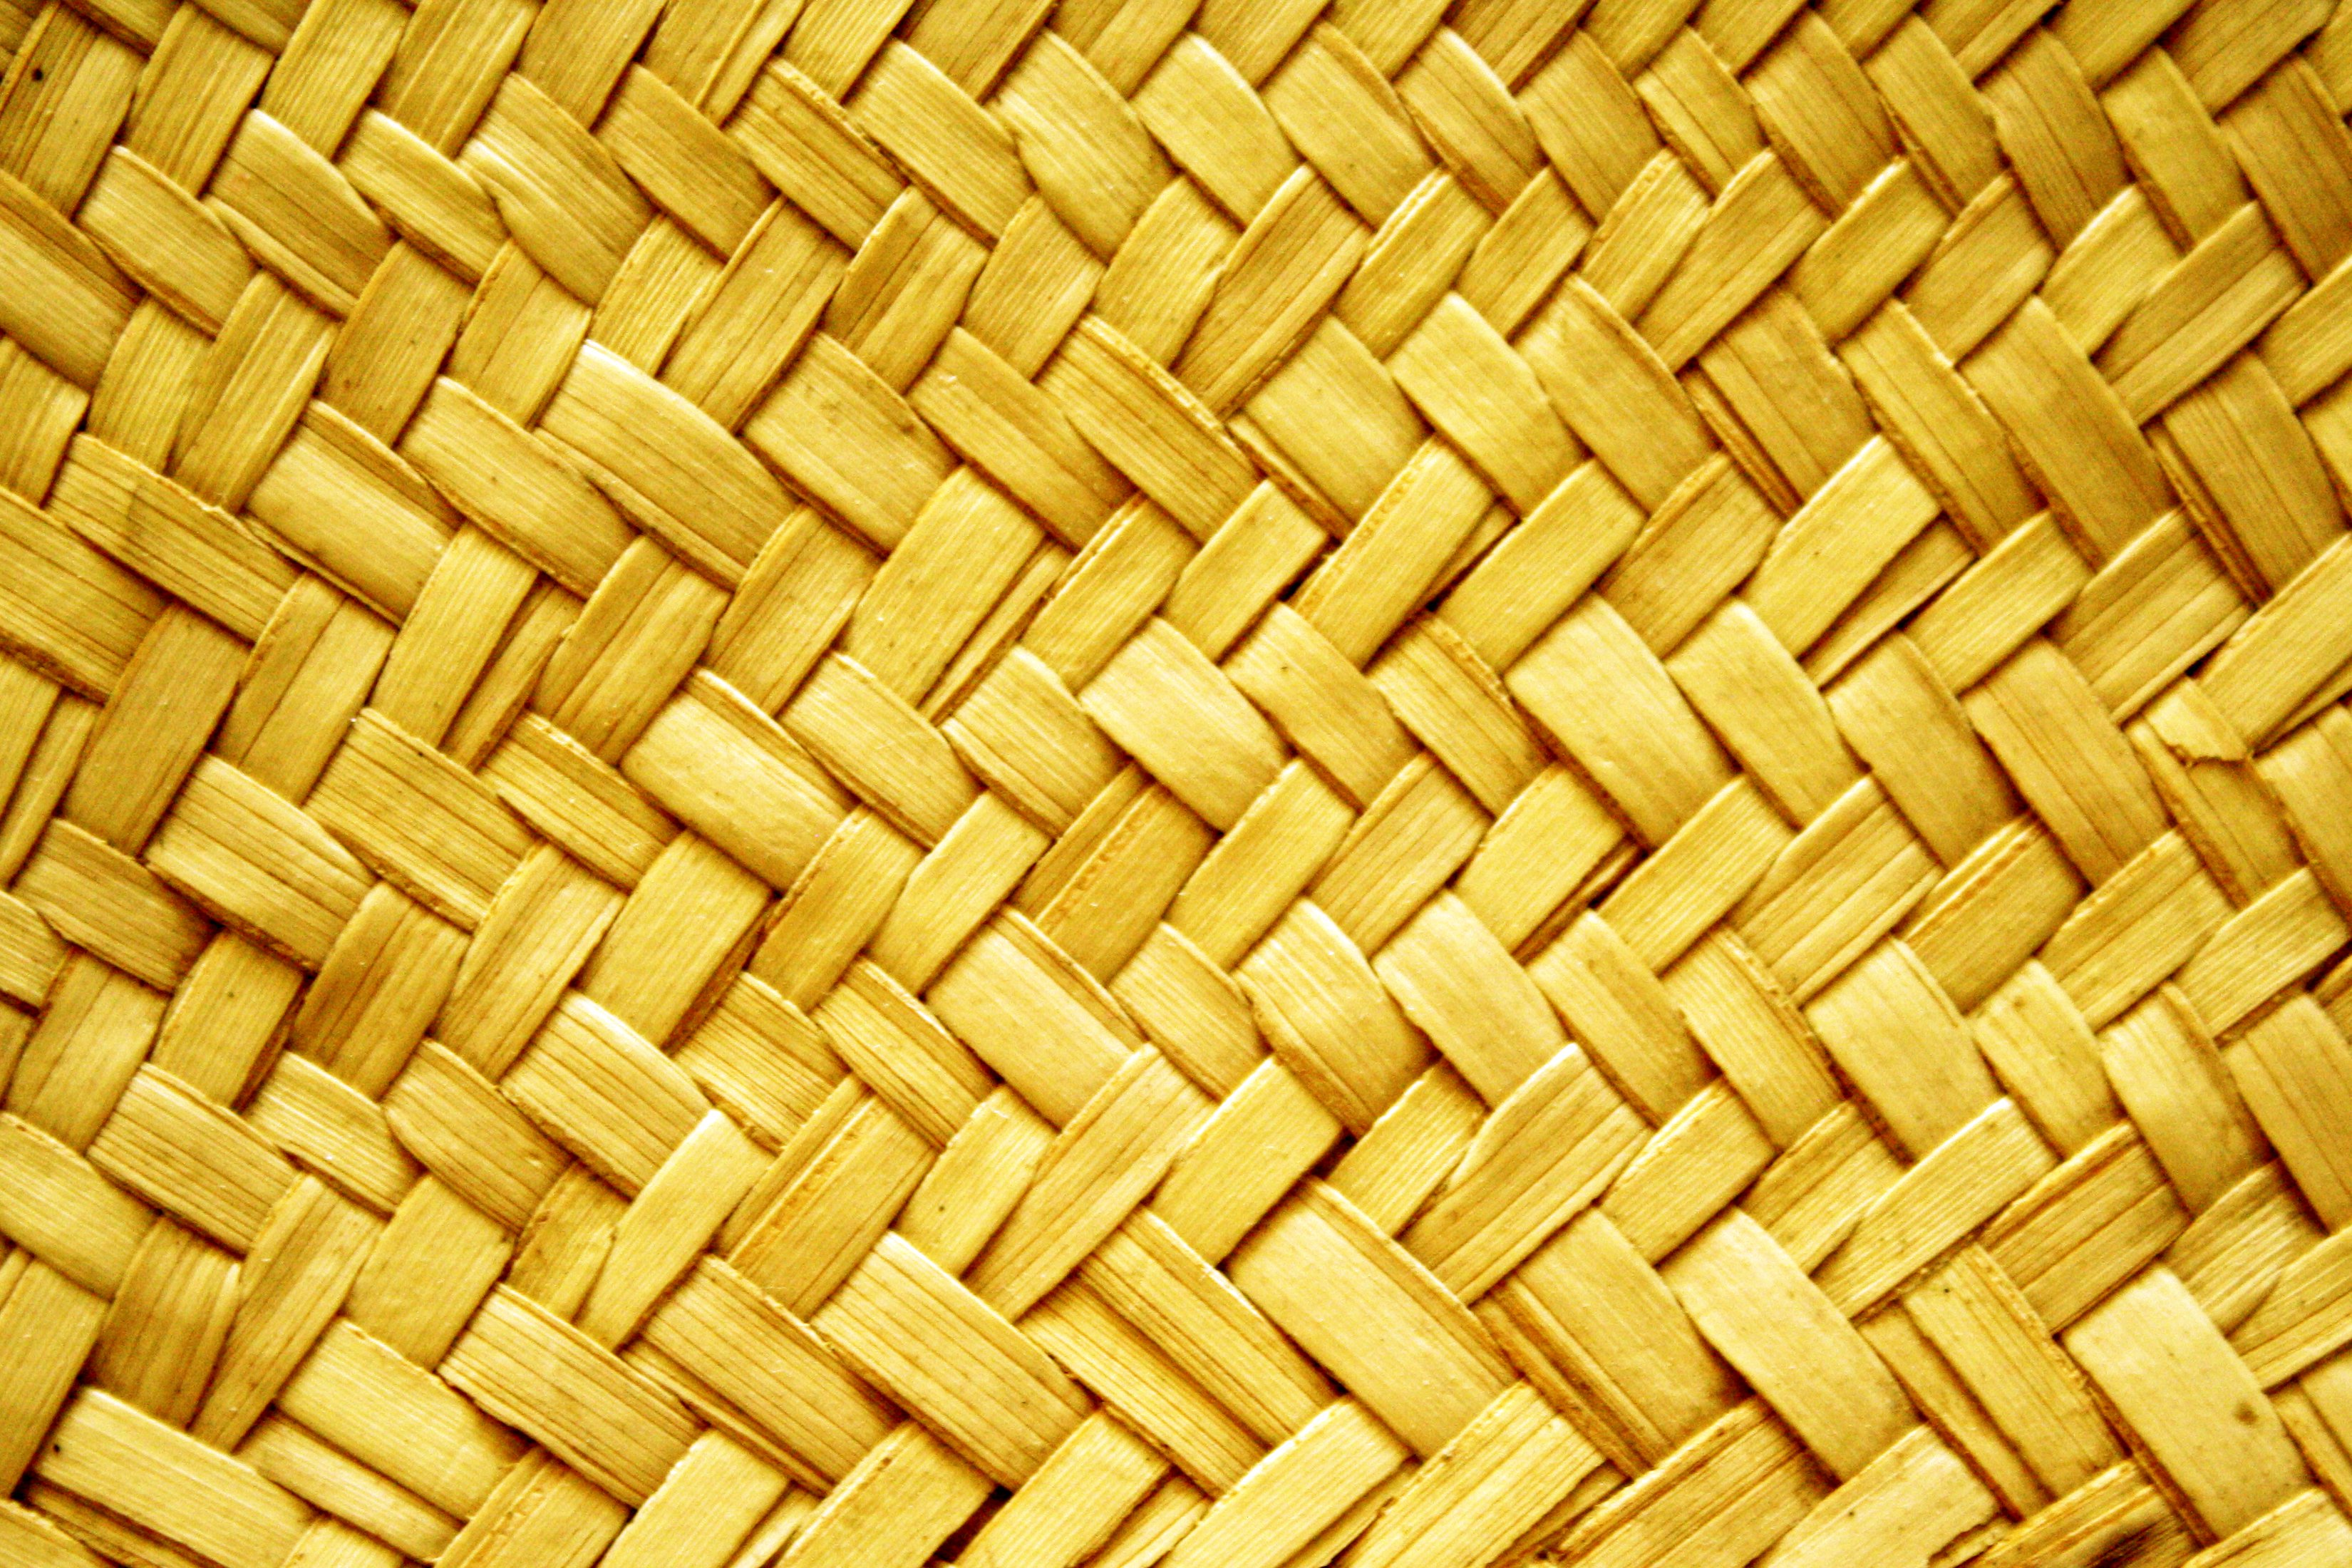 Yellow Woven Straw Texture Picture Free Photograph